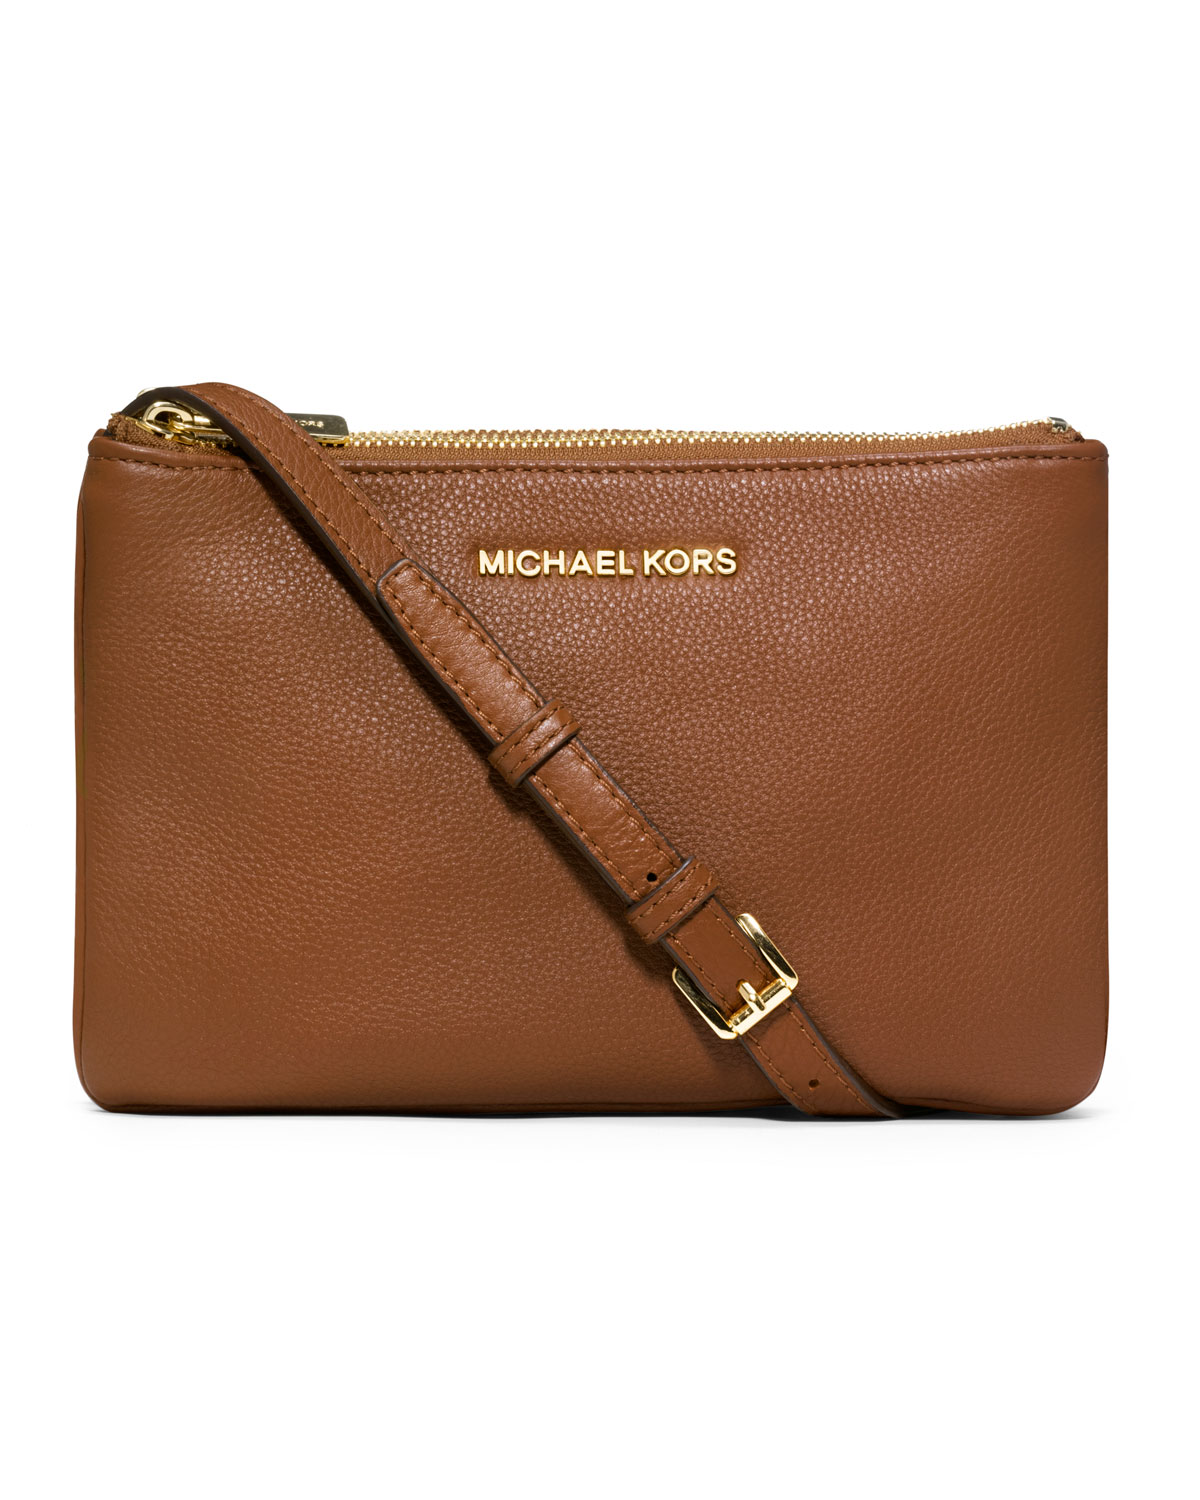 0f499181ccfeac Crossbody Bags Michael Kors | Stanford Center for Opportunity Policy ...